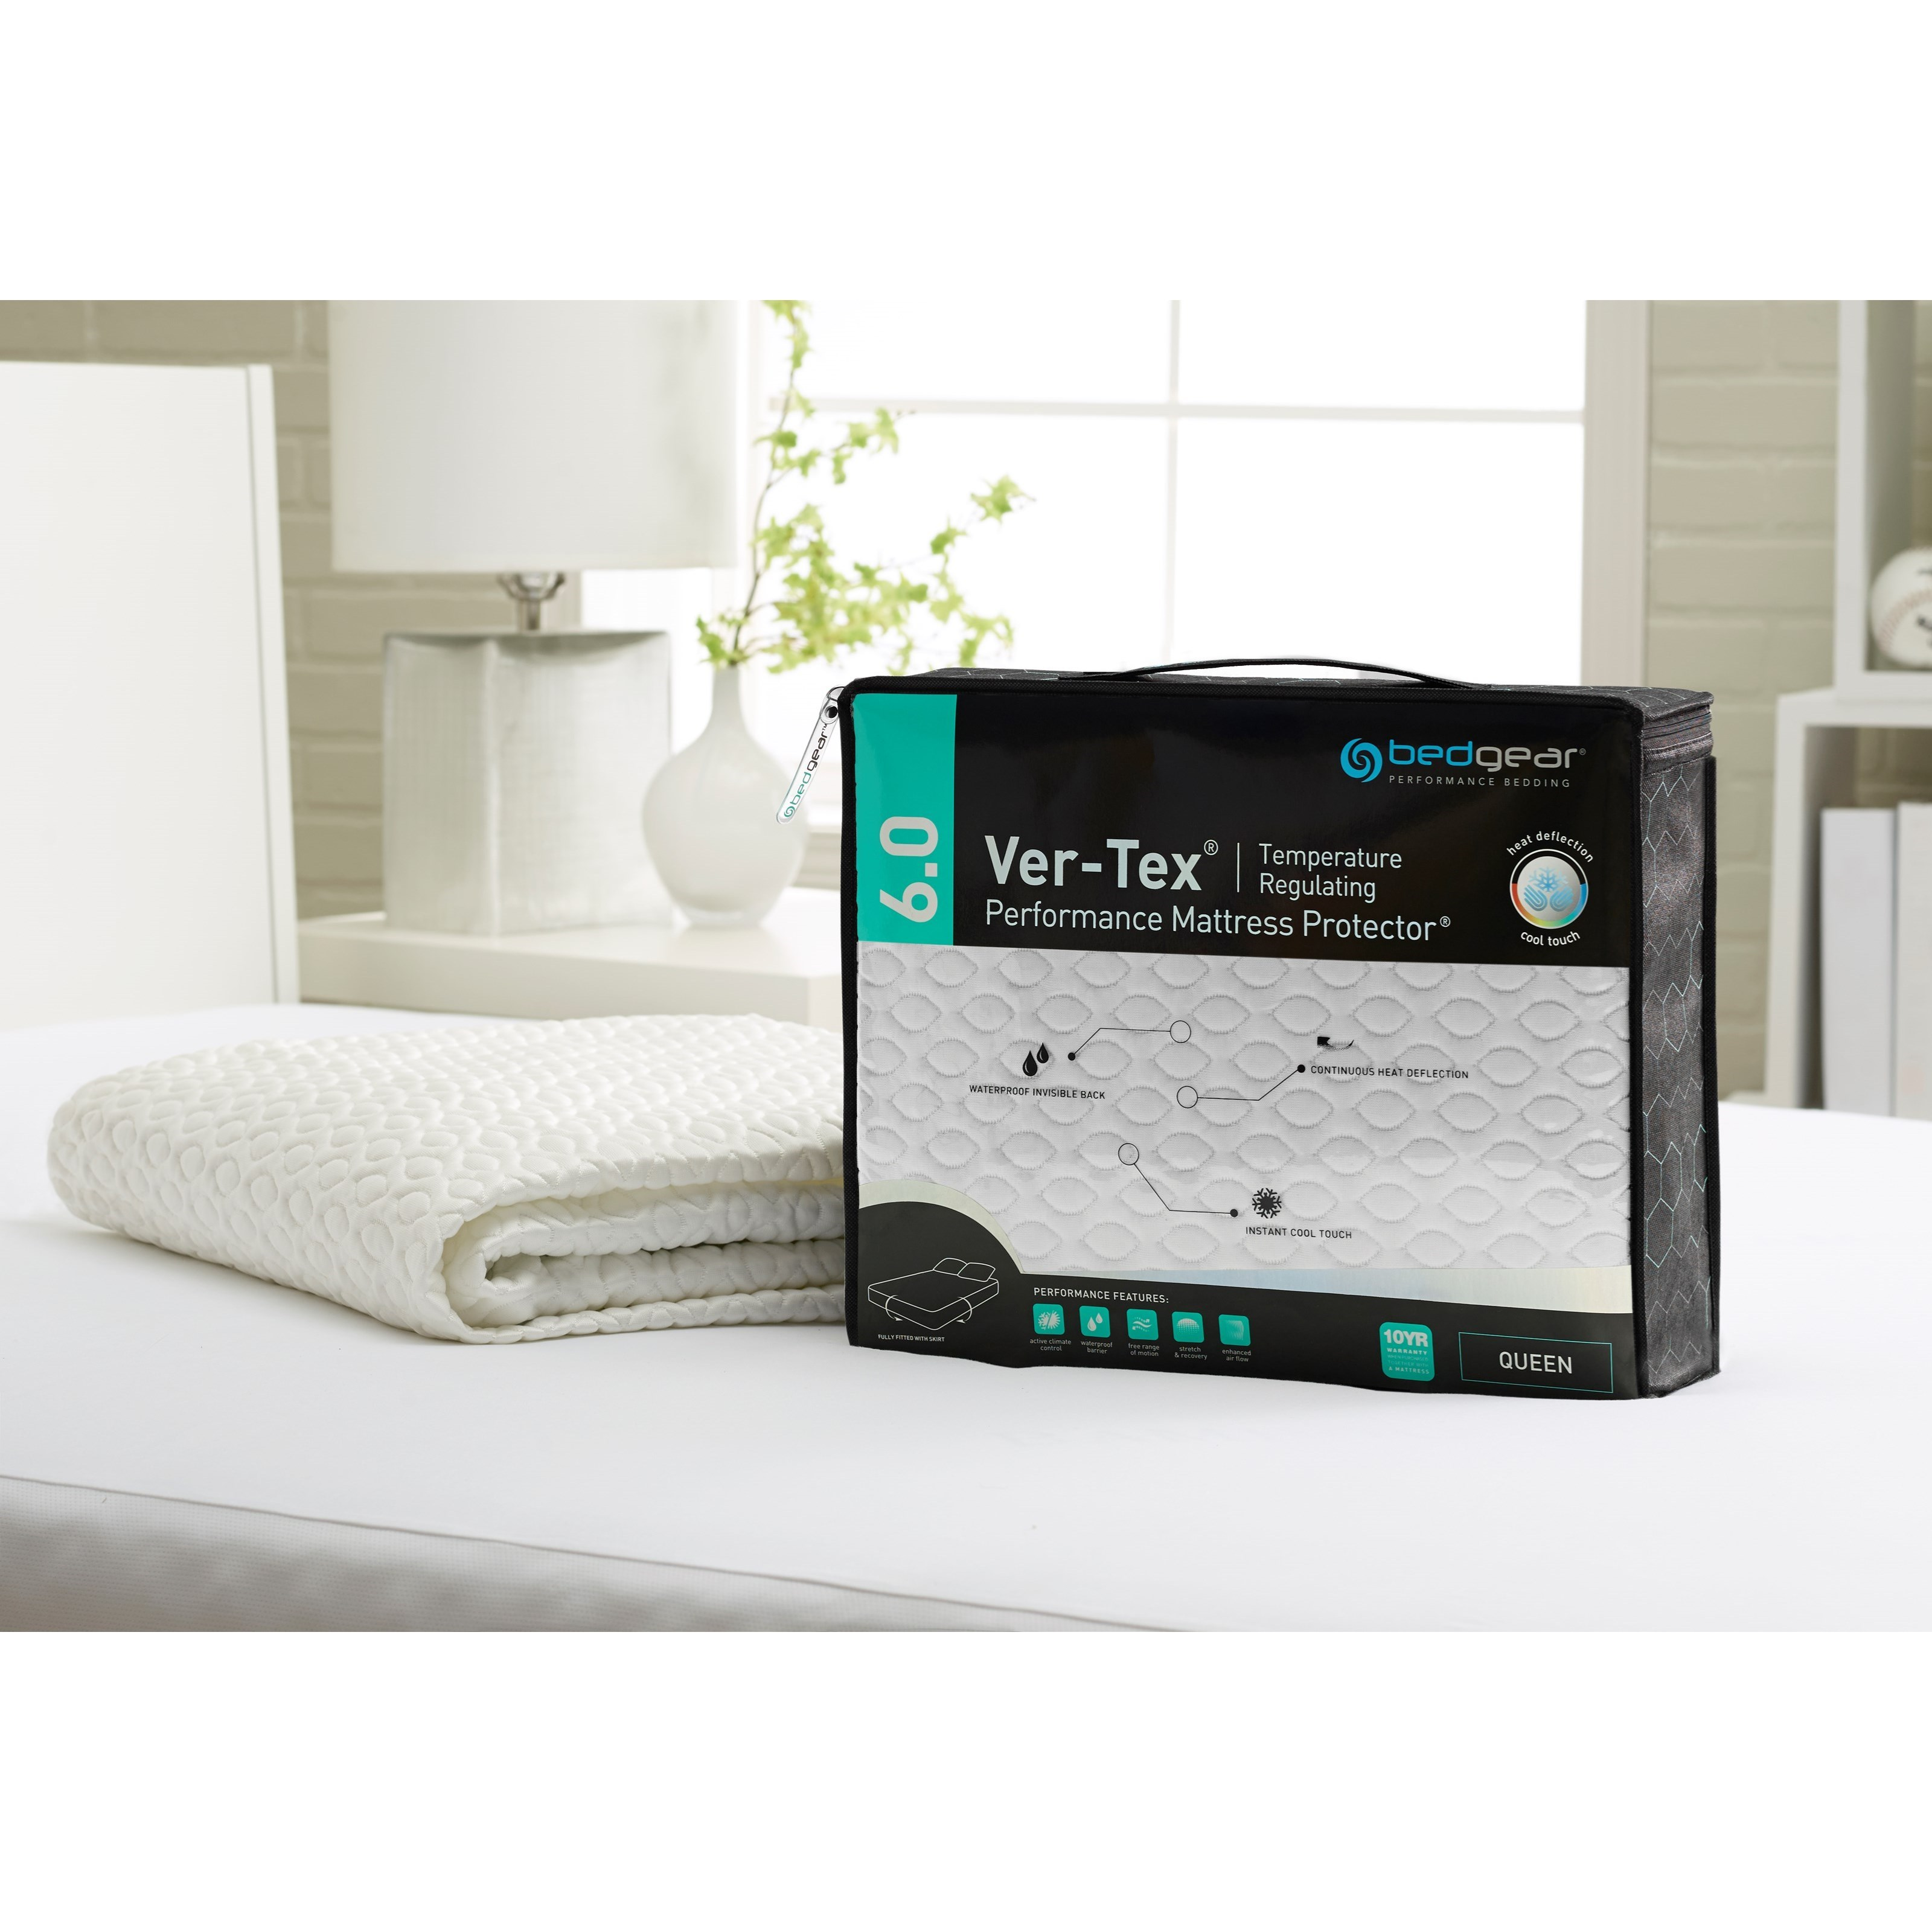 Ver-Tex® Full  6.0 Ver-Tex® Mattress Protector by Bedgear at Darvin Furniture